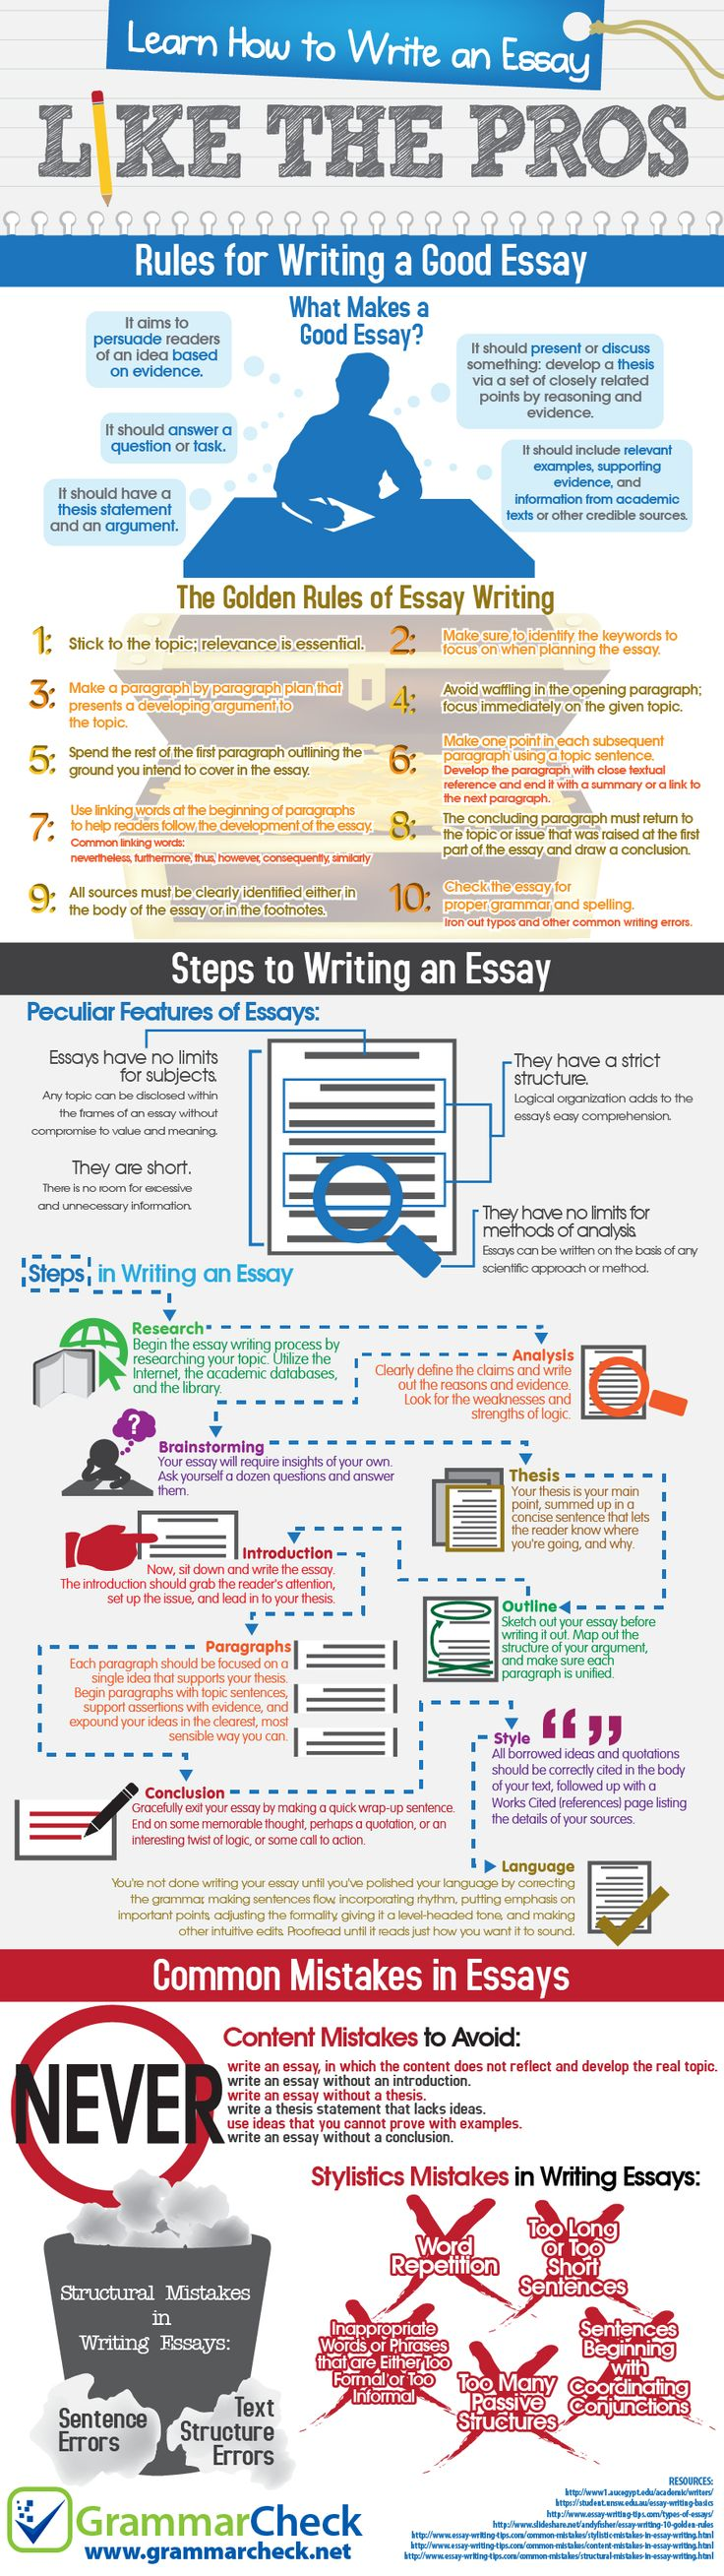 best ideas about essay writing essay writing how to write an essay like the pros this infographic gives concise examples and key tips on what to do how to do it and why